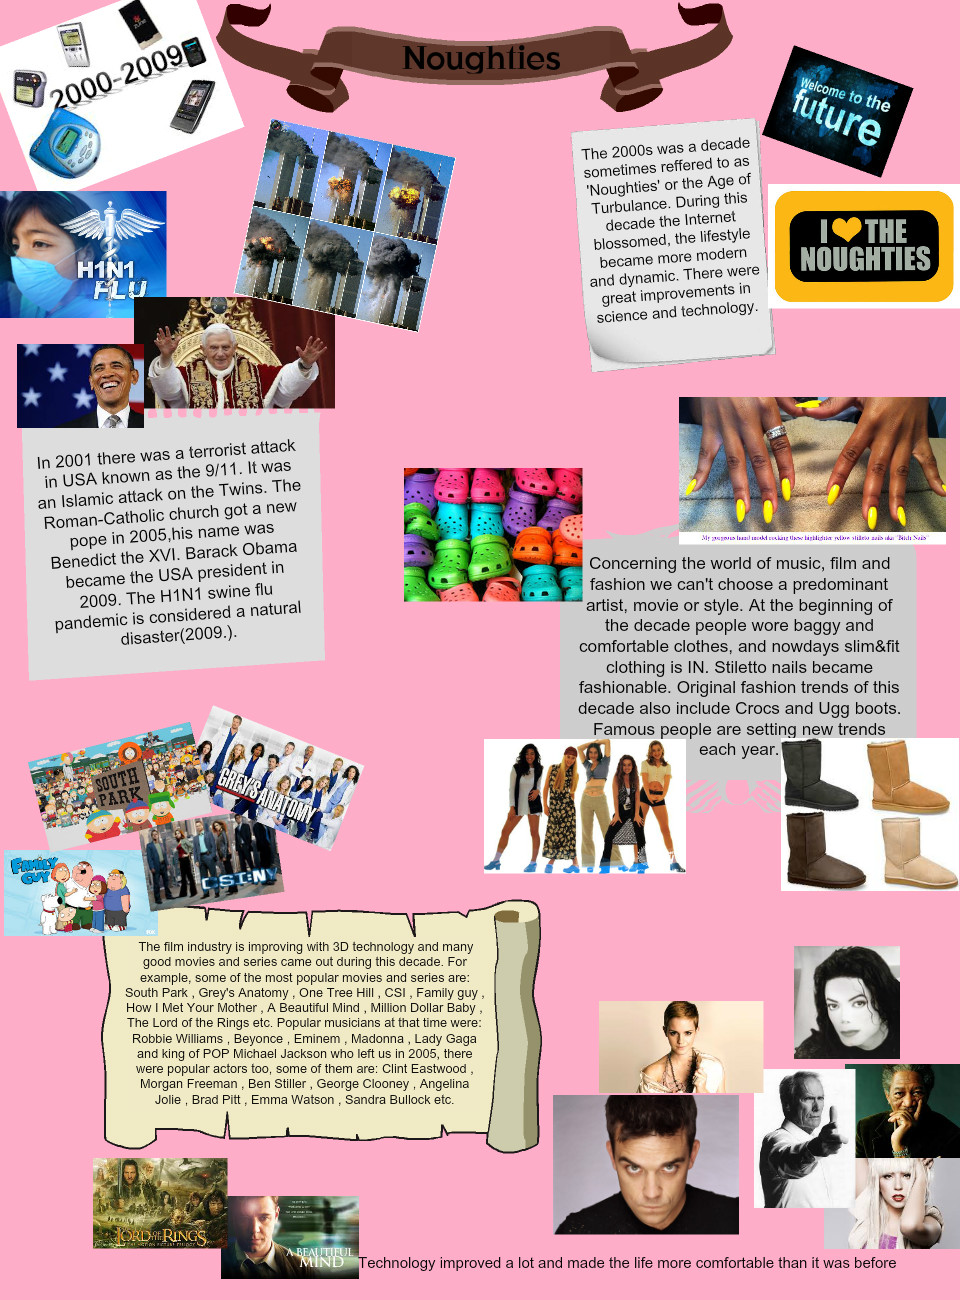 The Noughties by Sanja: text, images, music, video | Glogster EDU